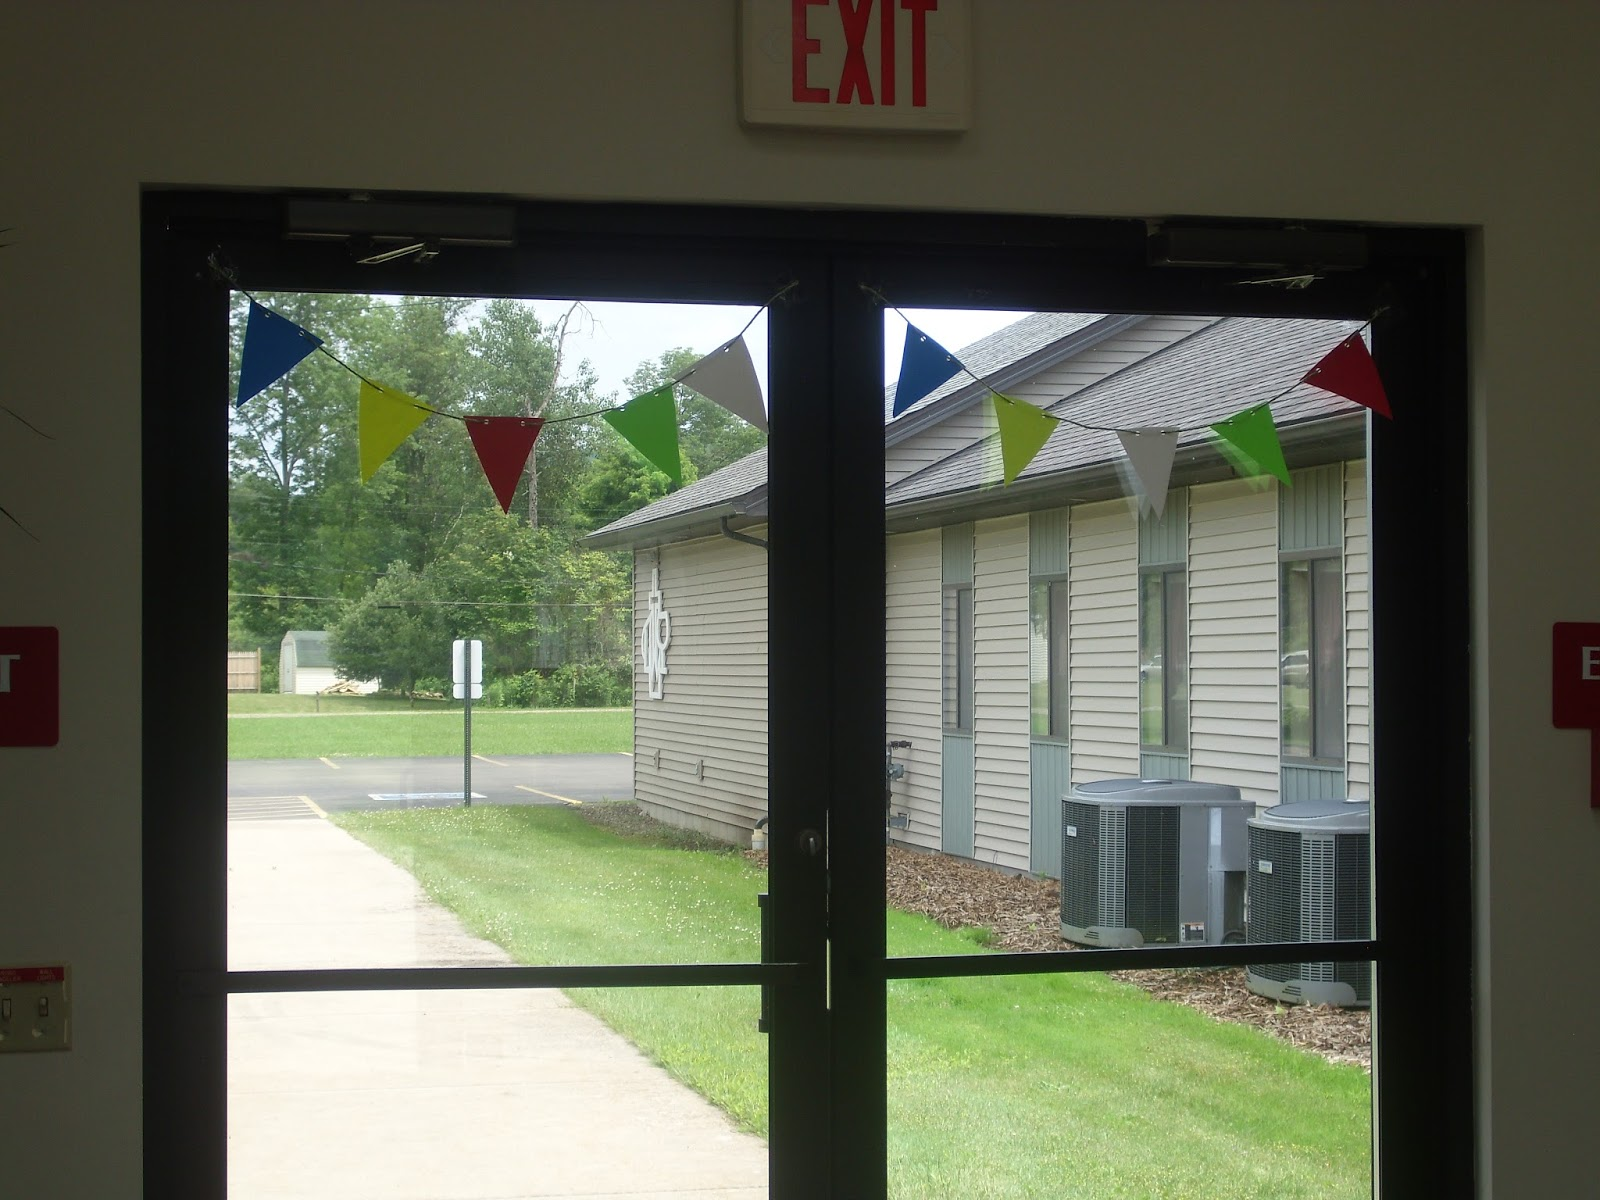 Mixingitup More Vacation Bible School Vbs Ideas For